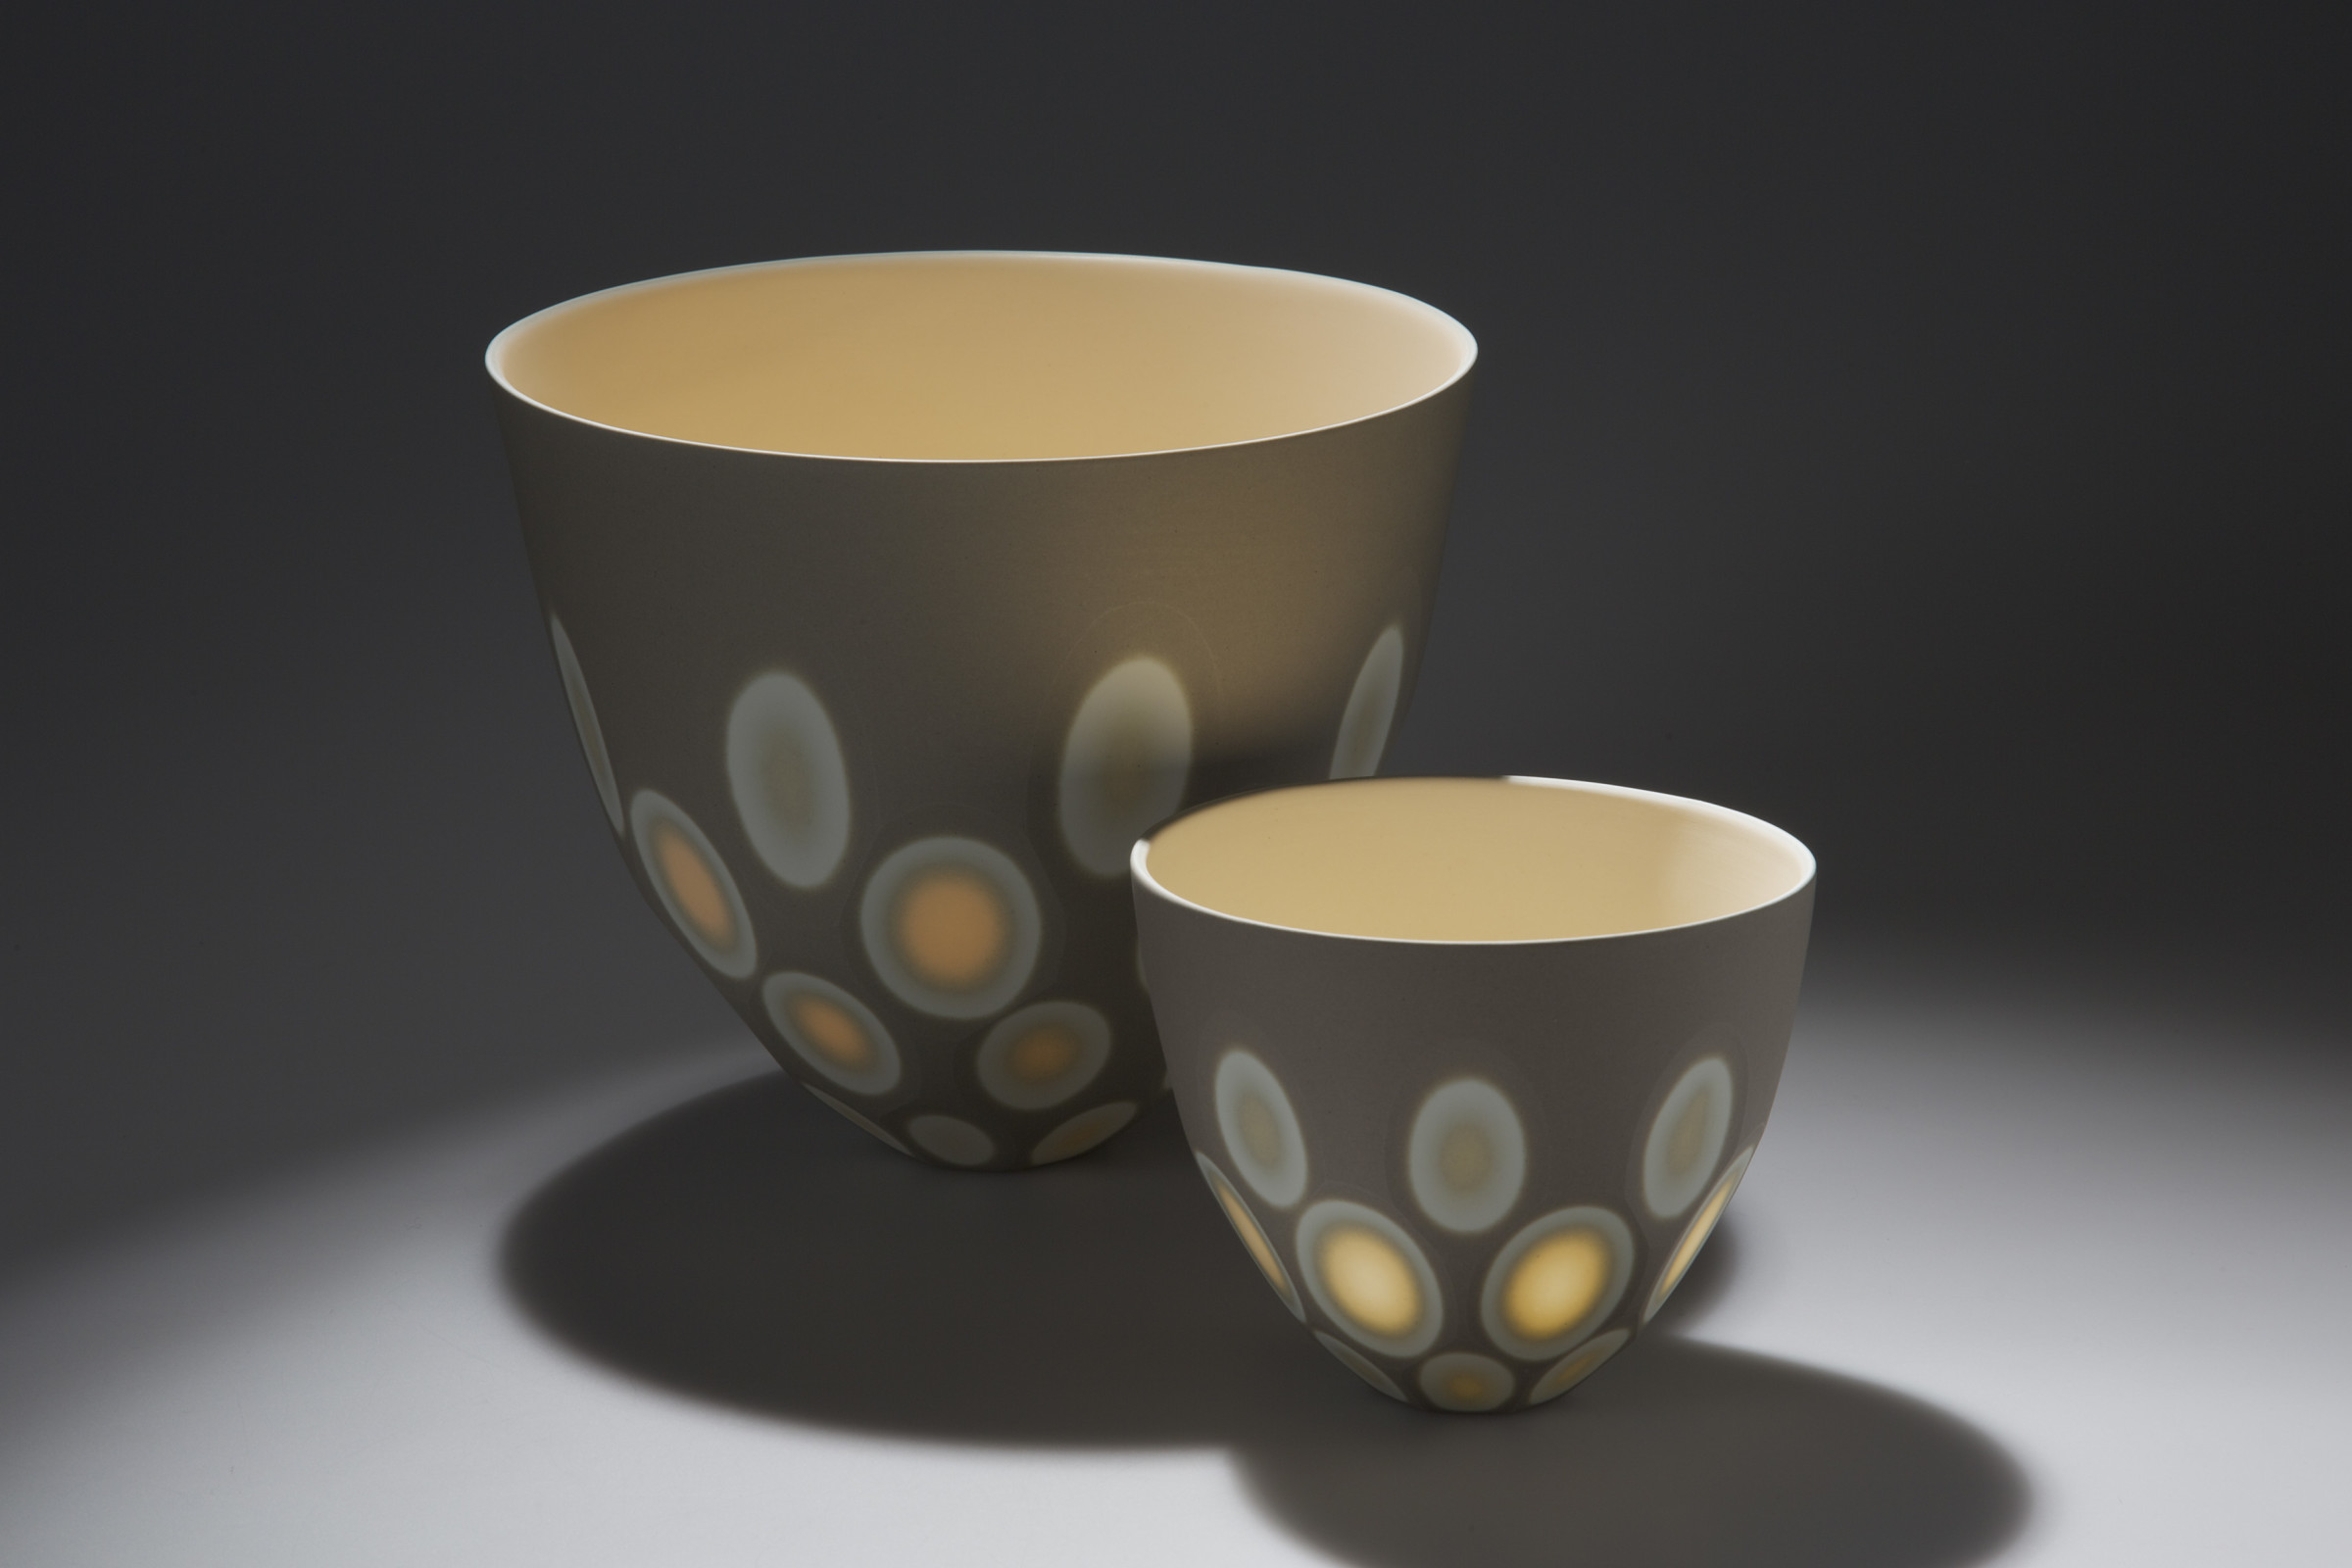 "<span class=""link fancybox-details-link""><a href=""/artists/60-sasha-wardell/works/5057-sasha-wardell-sepia-space-bowl-large-2017/"">View Detail Page</a></span><div class=""artist""><strong>Sasha Wardell</strong></div> <div class=""title""><em>Sepia Space Bowl - Large </em>, 2017</div> <div class=""dimensions"">35 cm</div><div class=""copyright_line"">Copyright The Artist</div>"